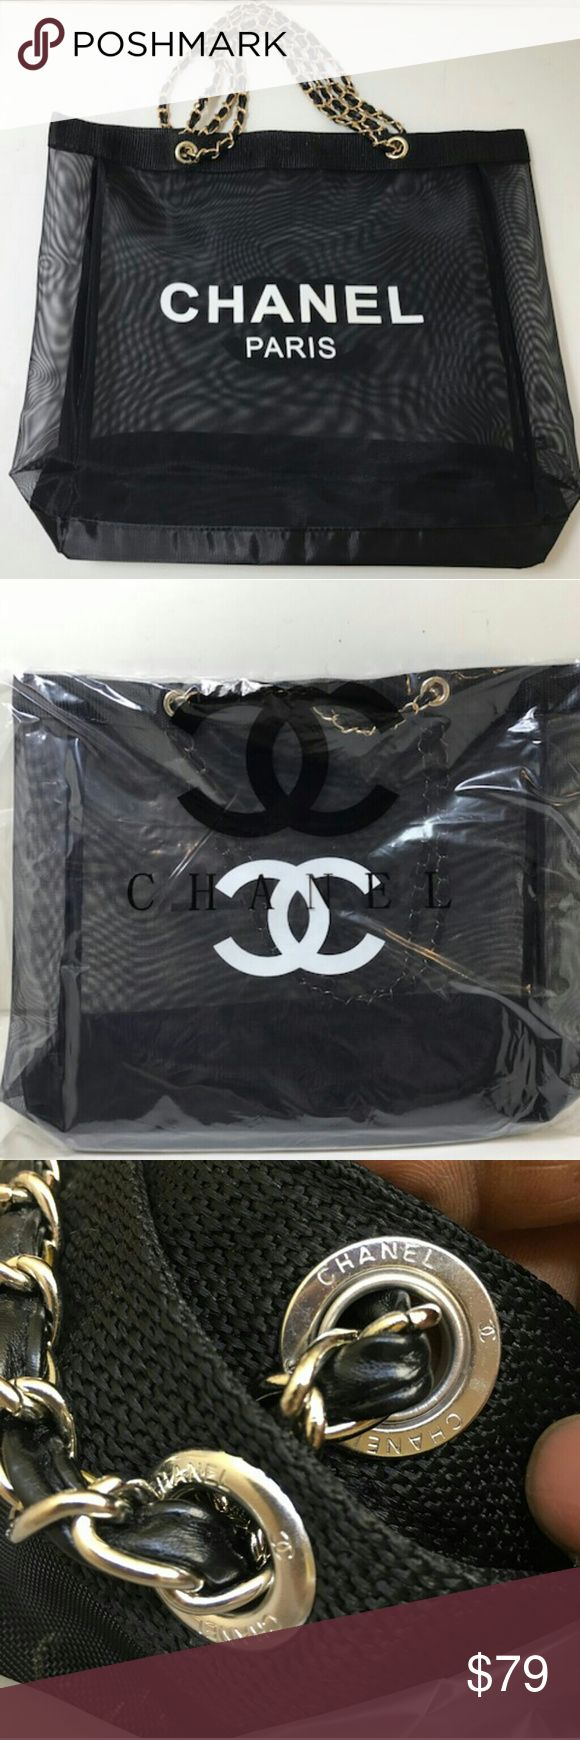 """Brand new Chanel vip gift bag mesh tote bag gold Brand new Chanel vip gift bag mesh tote bag gold chains . size 15"""" x 15"""" . chain drop 11"""".VIP gift form Korea Chanel flagship store. With original packaging. Look at the ring inside the bag with Chanel on it. 100% authentic! CHANEL Bags Totes"""